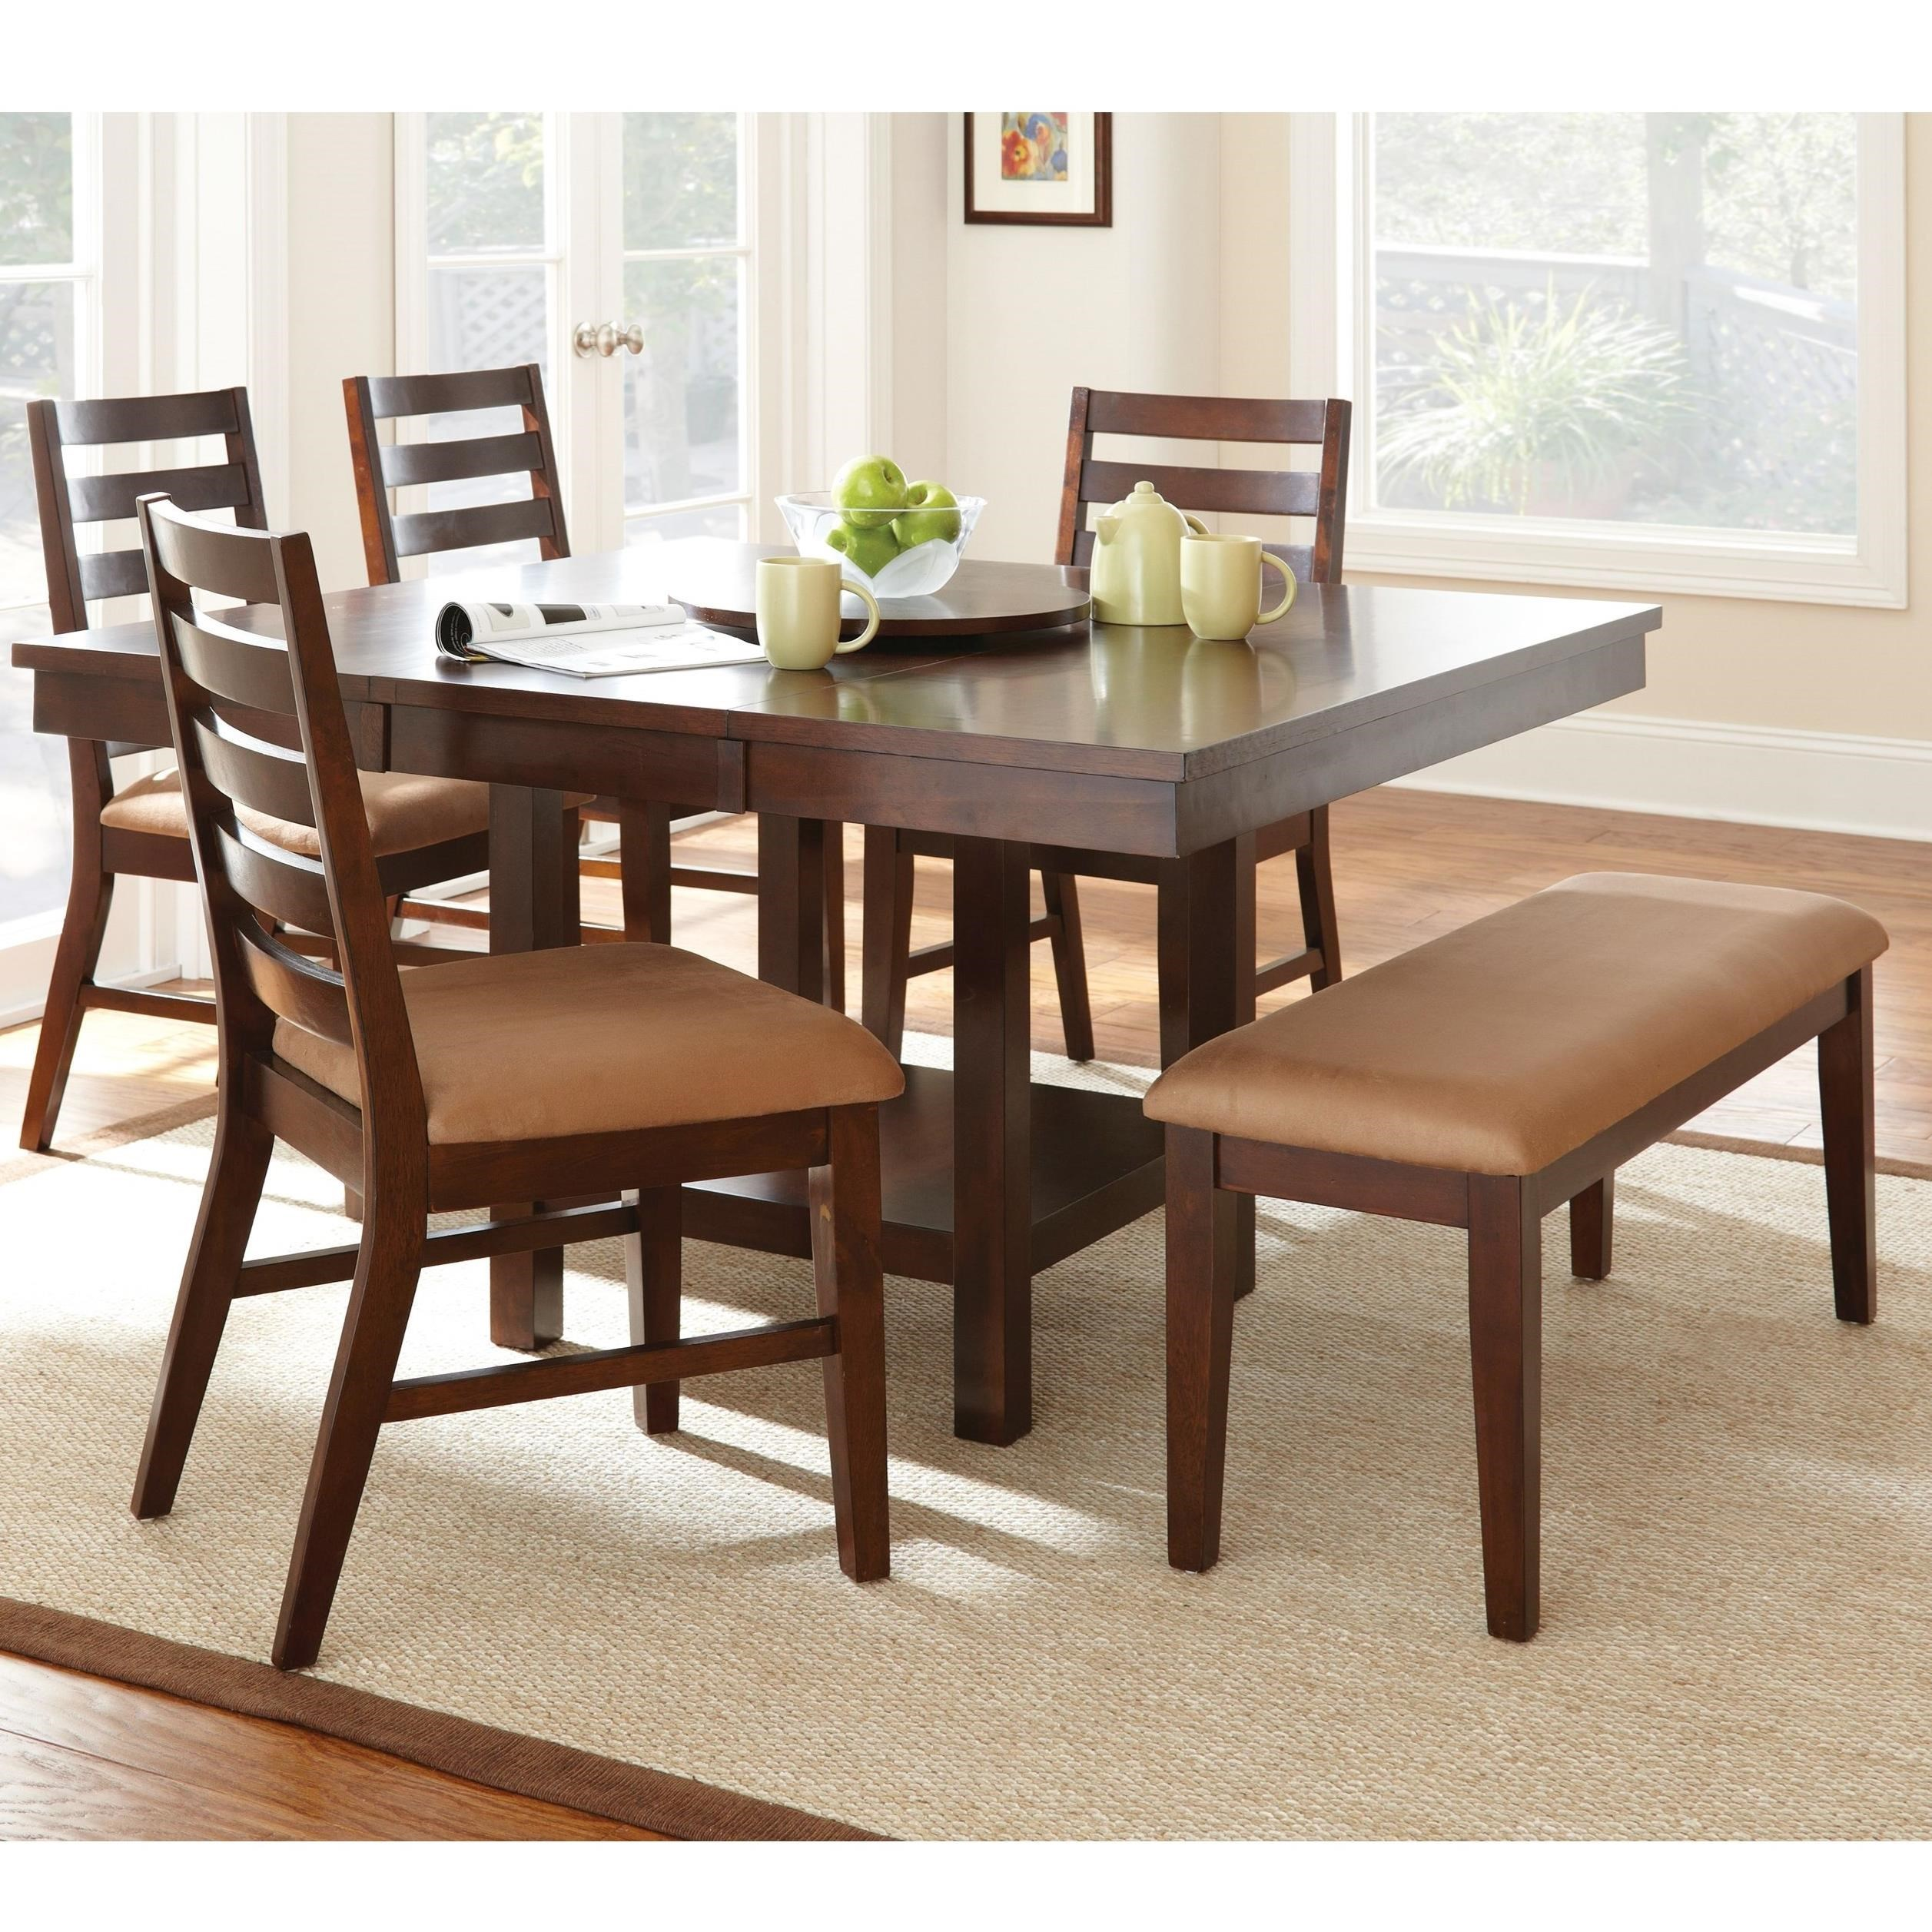 Steve Silver Eden 6 Piece Dining Set With Bench